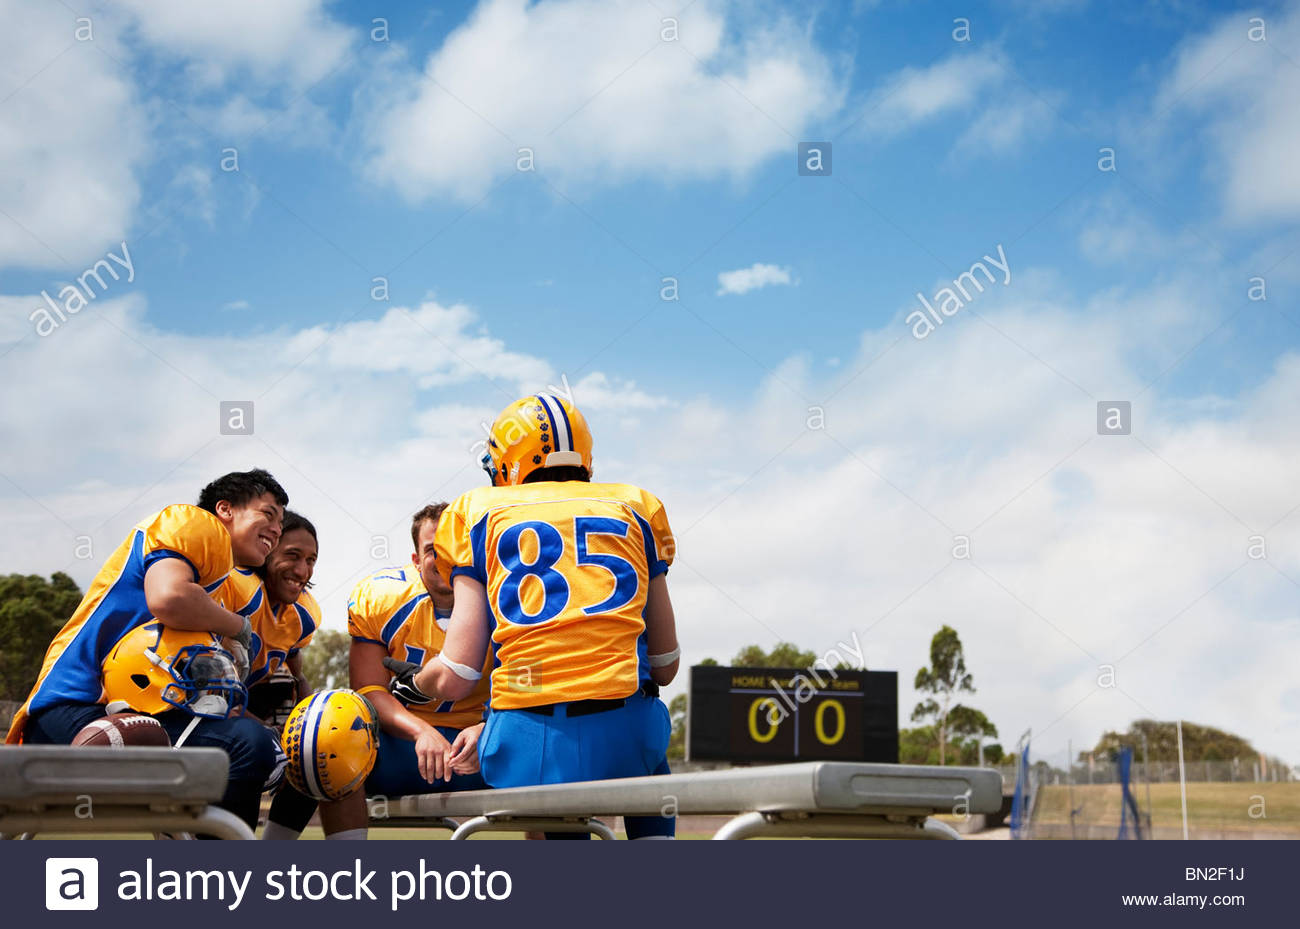 Football players resting on bench - Stock Image